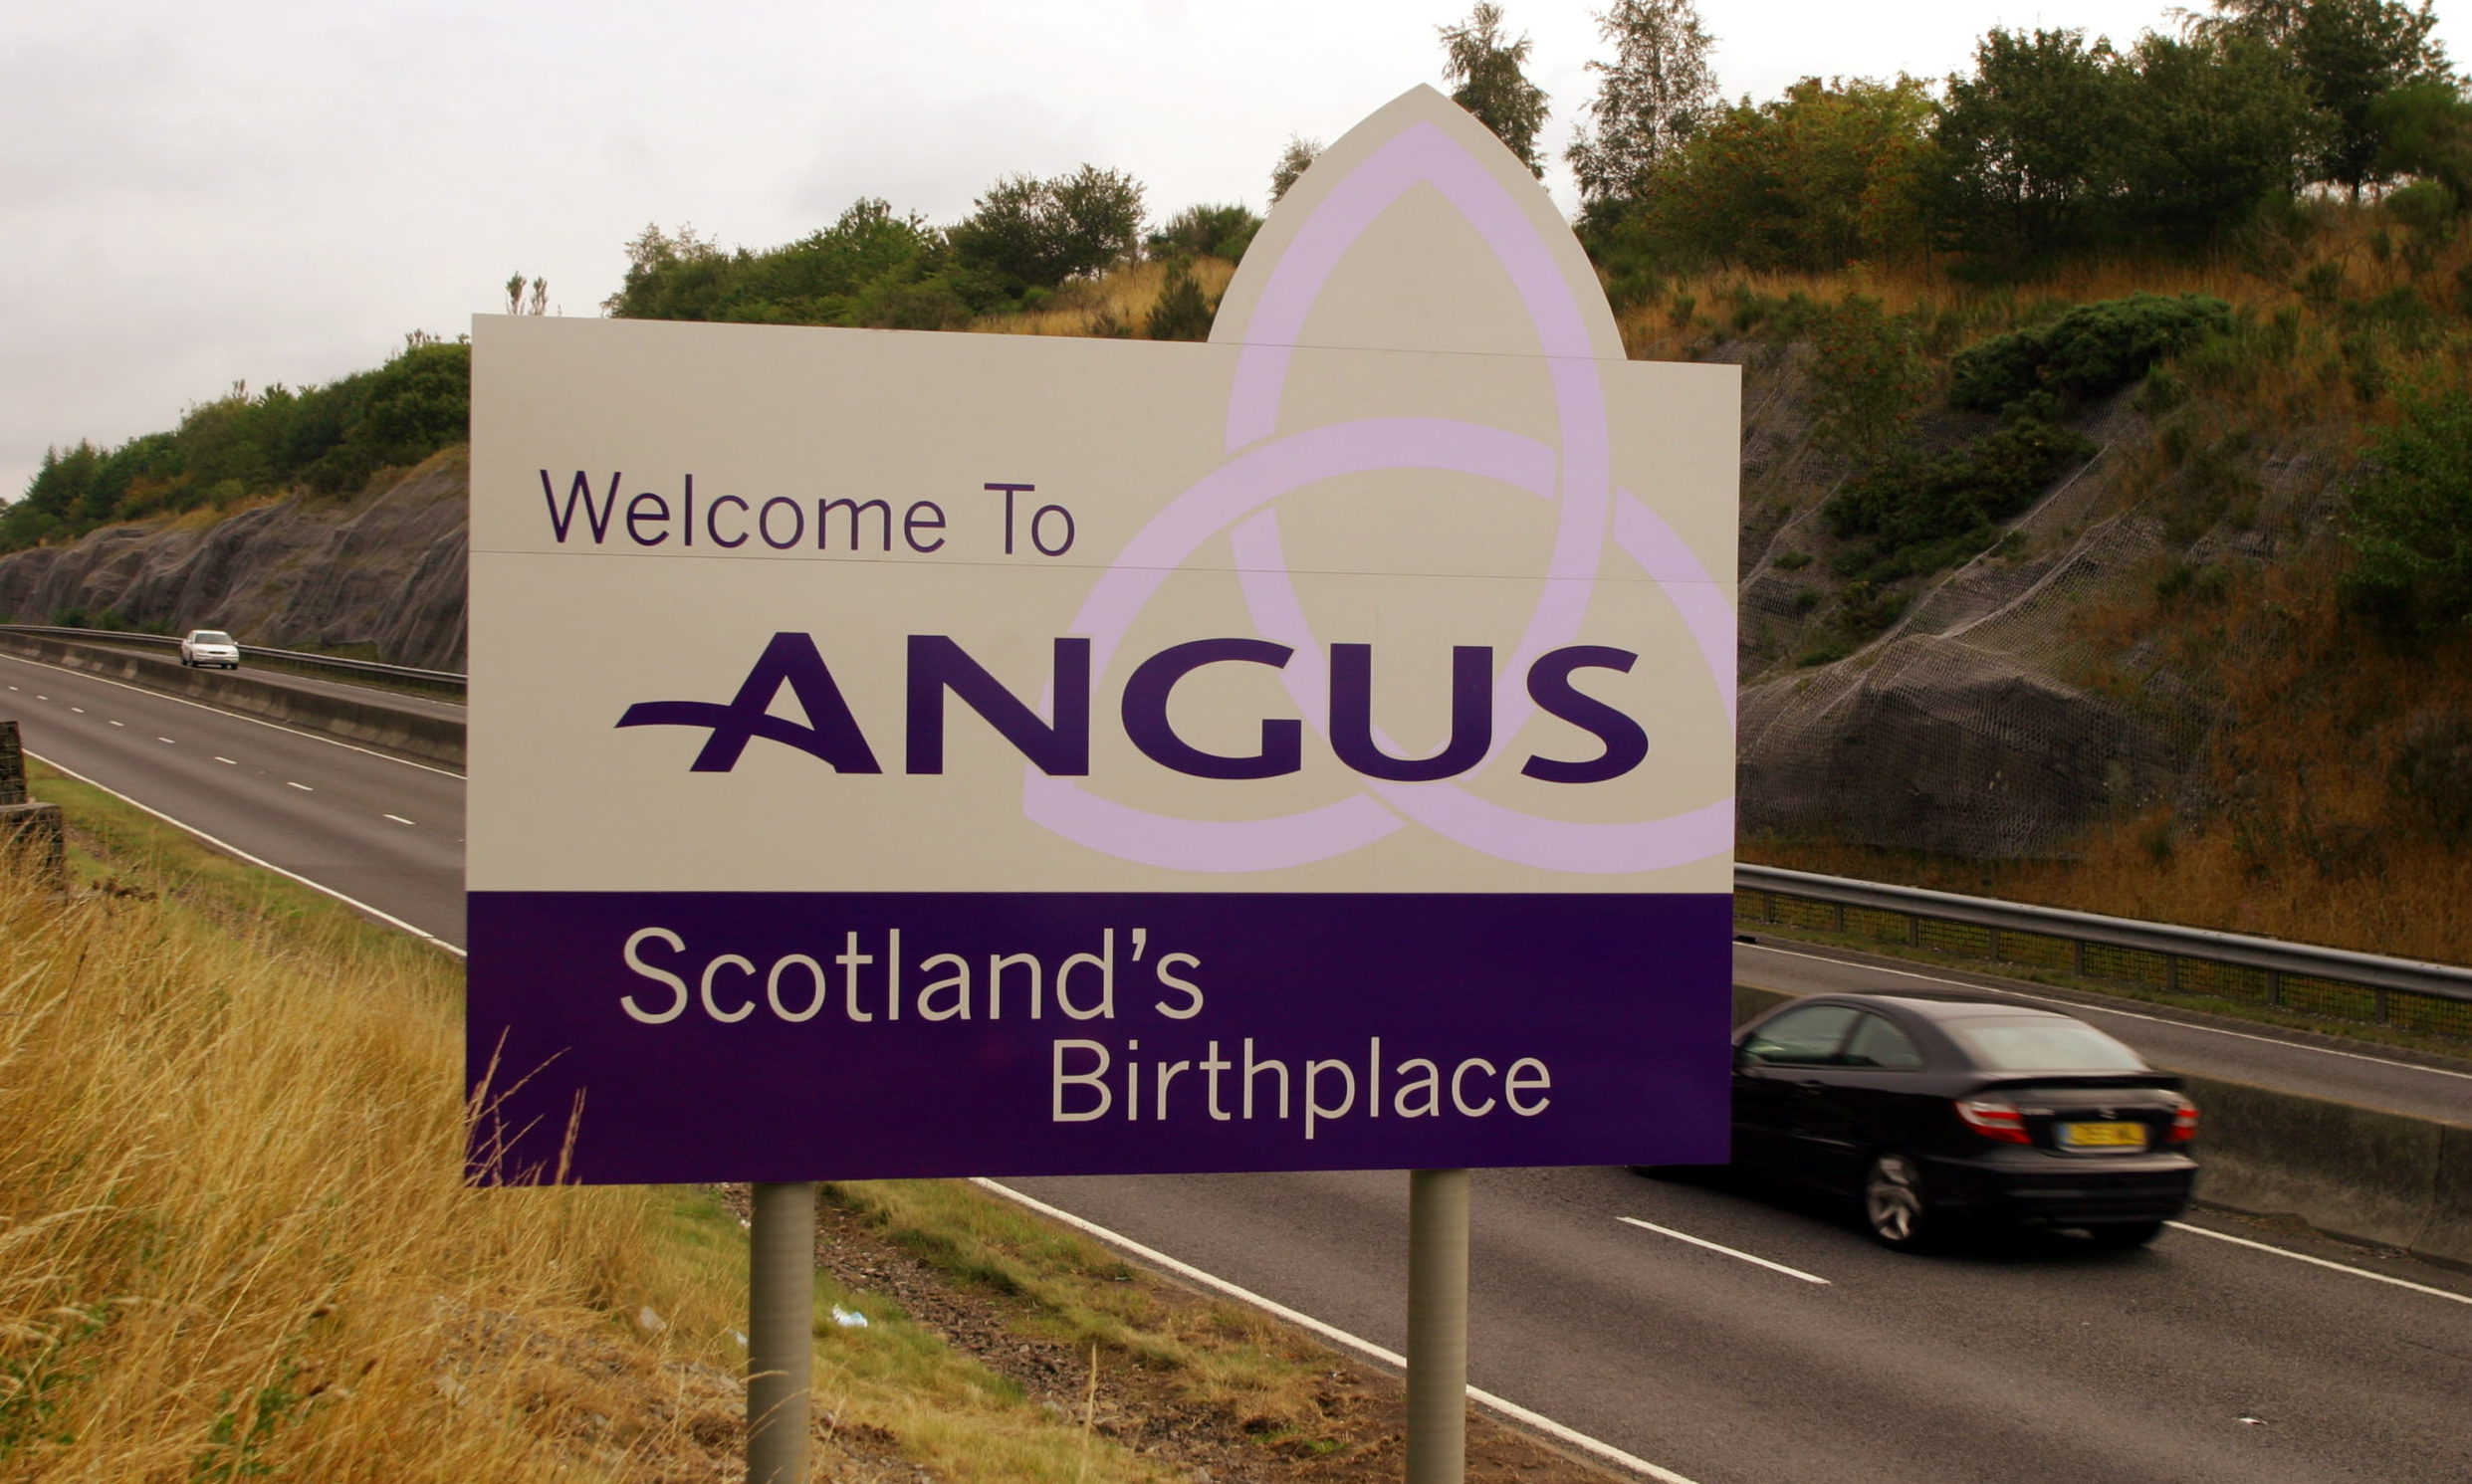 Welcome to Angus sign by the A90